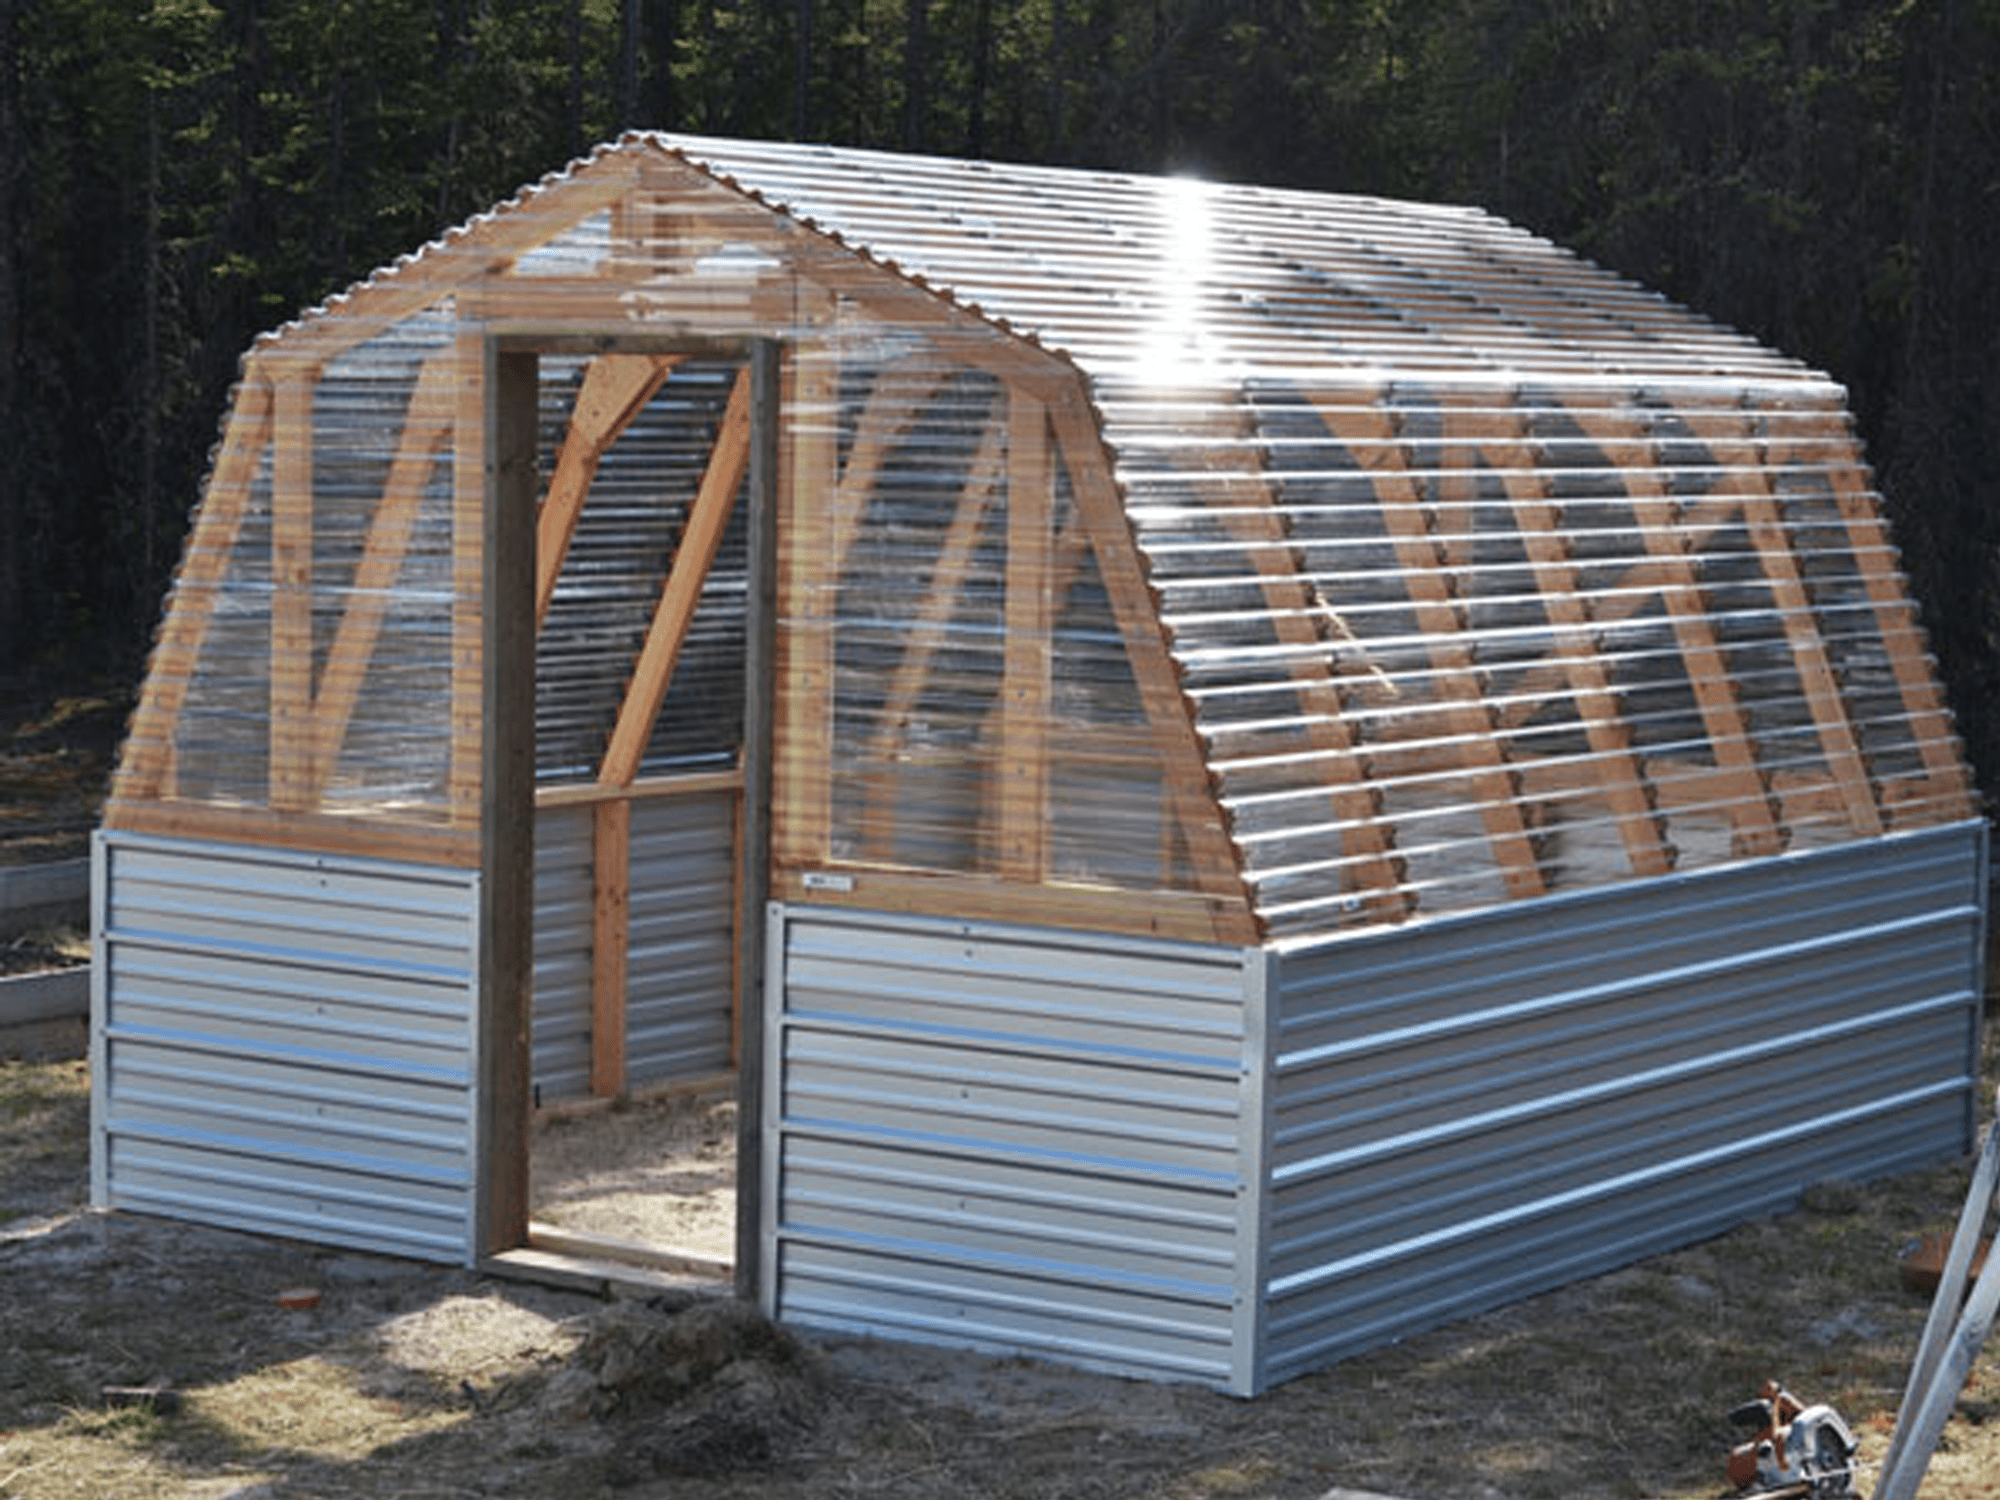 13 Free DIY Greenhouse Plans Commercial Greenhouse Plans Designs on eco house plans designs, greenhouse conservatory designs, greenhouse structures and designs, quonset greenhouse structure designs, shed plans designs, gardening plans designs, best greenhouse designs, unique greenhouse designs, garage plans designs, hoop house greenhouse designs, home plans designs,